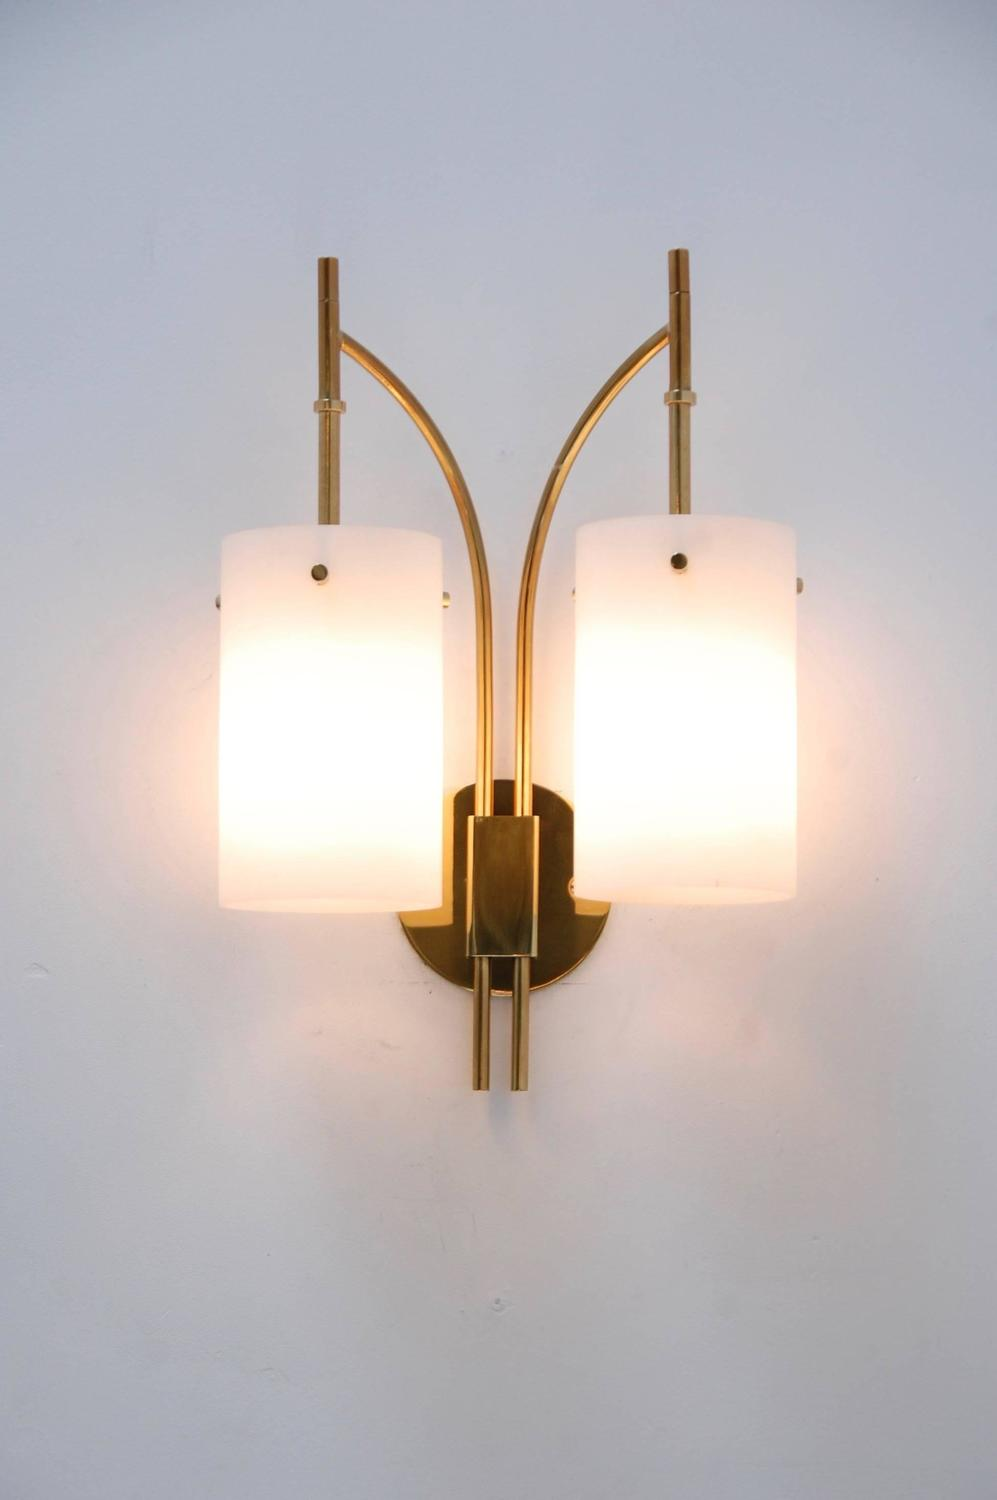 Double Wall Sconce With Shades : 1950s Italian Double Shade Cylinder Sconce For Sale at 1stdibs